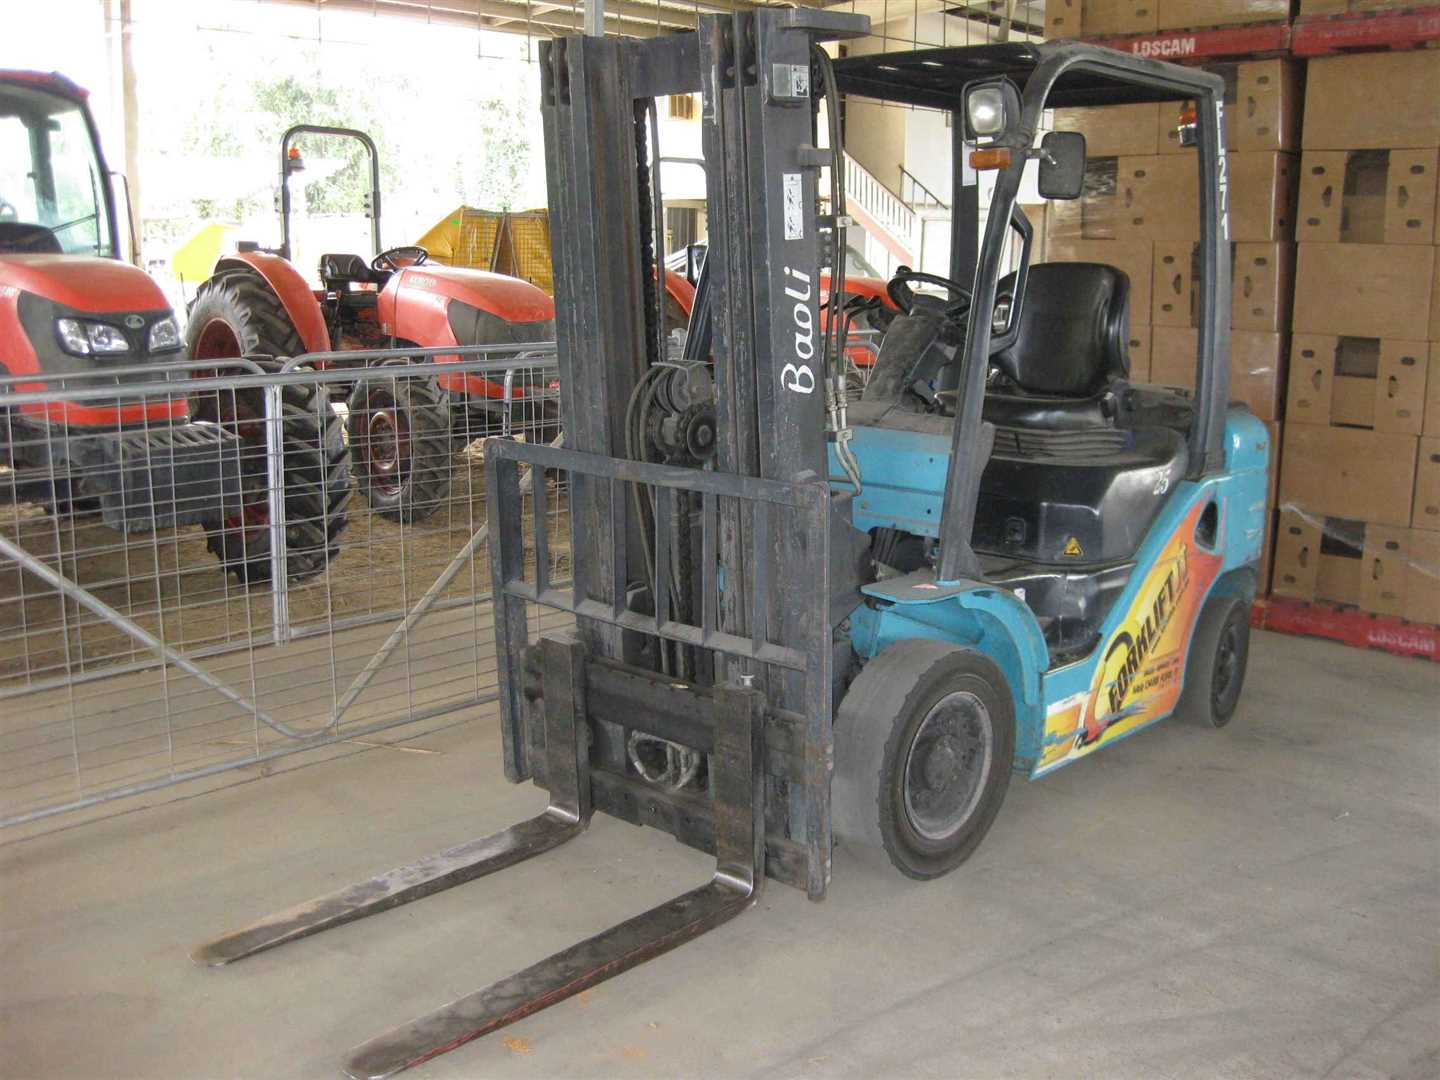 View of part of forklift, Baoli